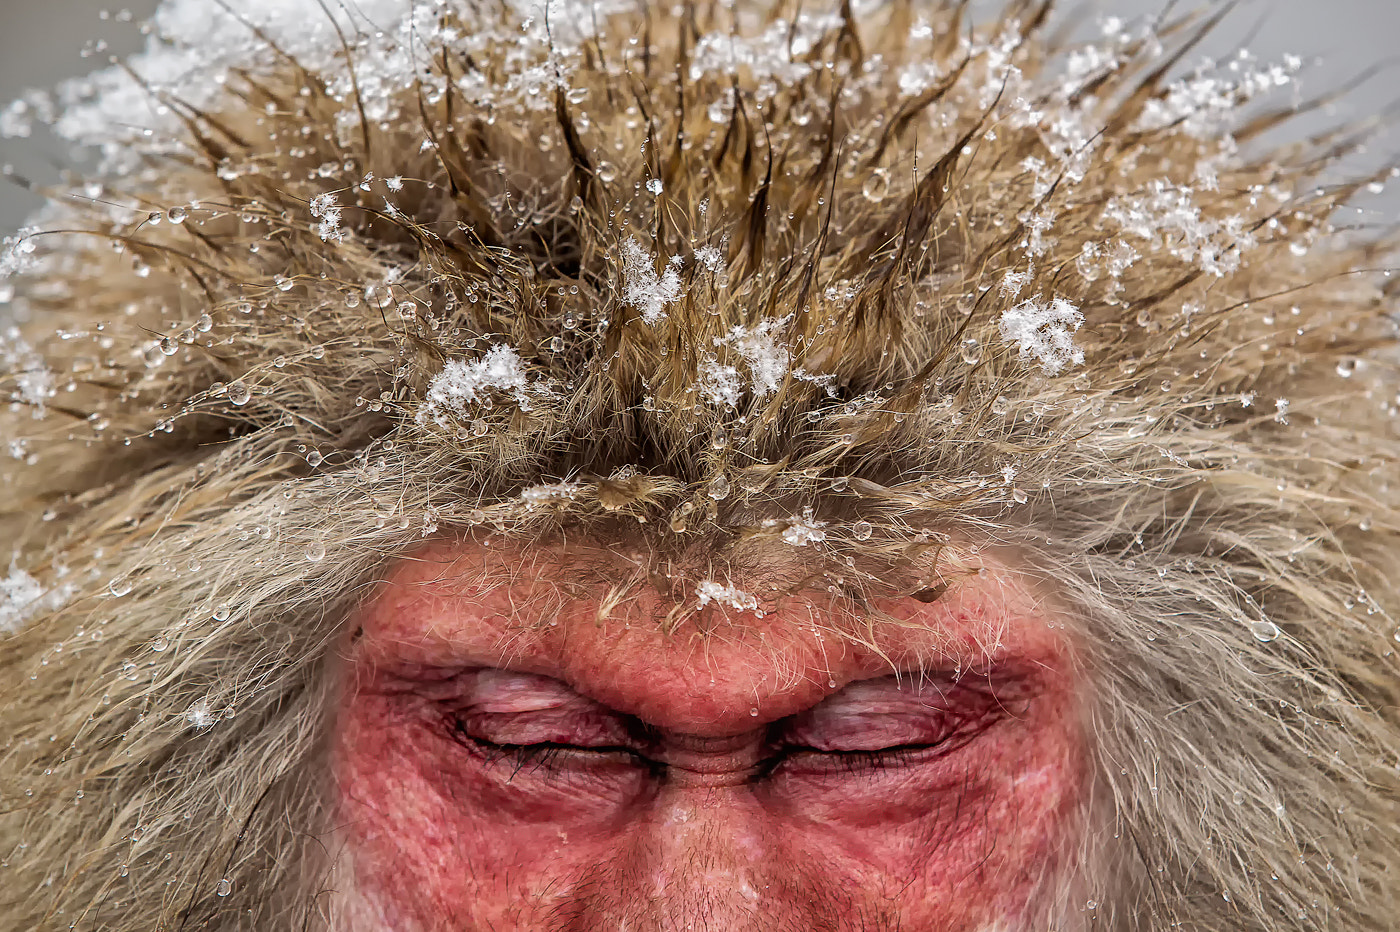 Photograph Snow Monkey by Phil  Morgan on 500px